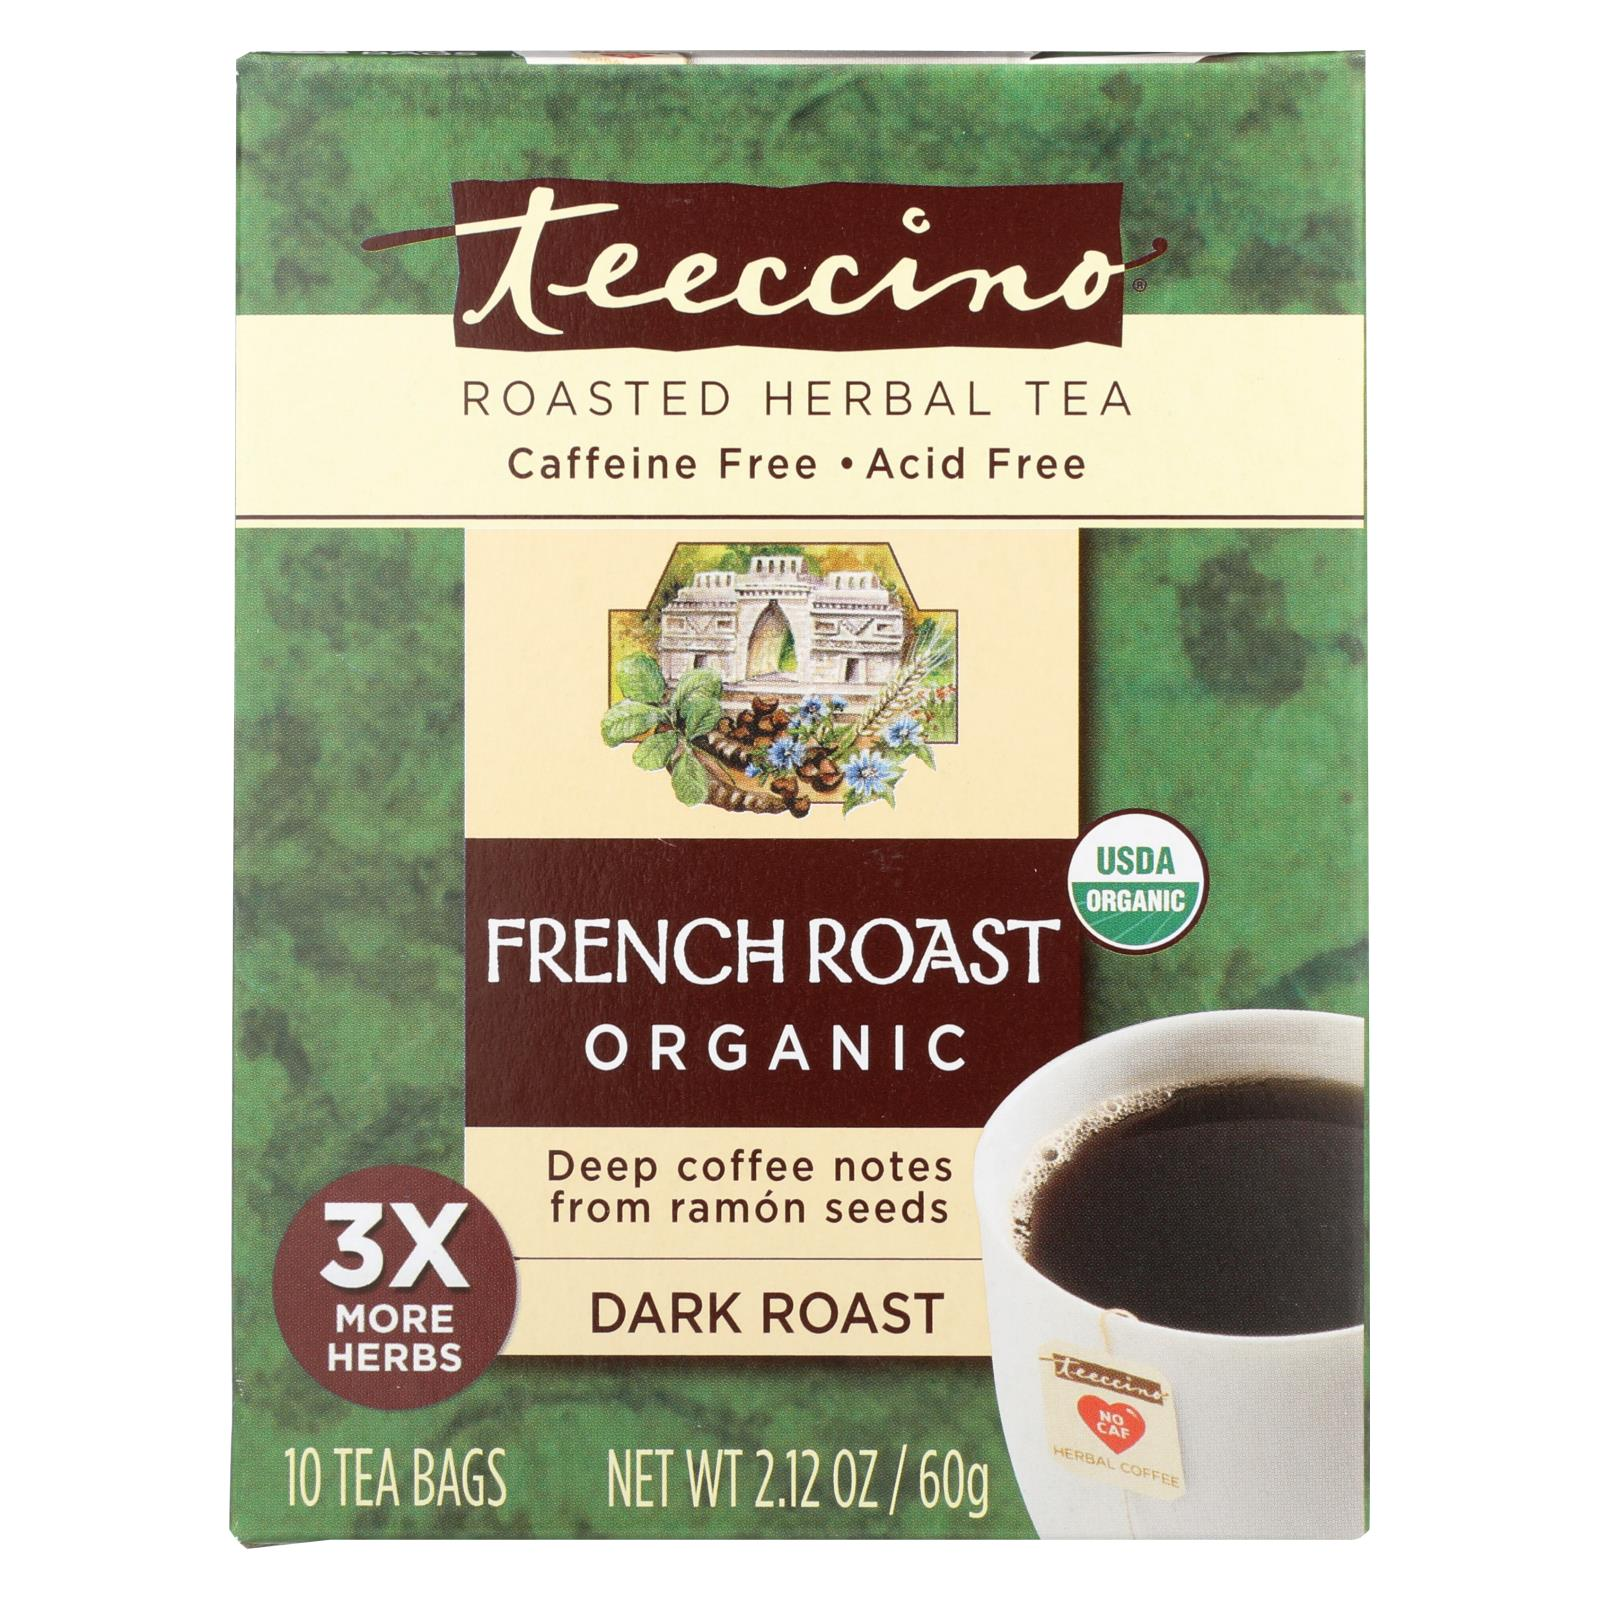 Buy Teeccino Organic Tee Bags - French Roast Herbal - 10 Bags - Beverages from Veroeco.com